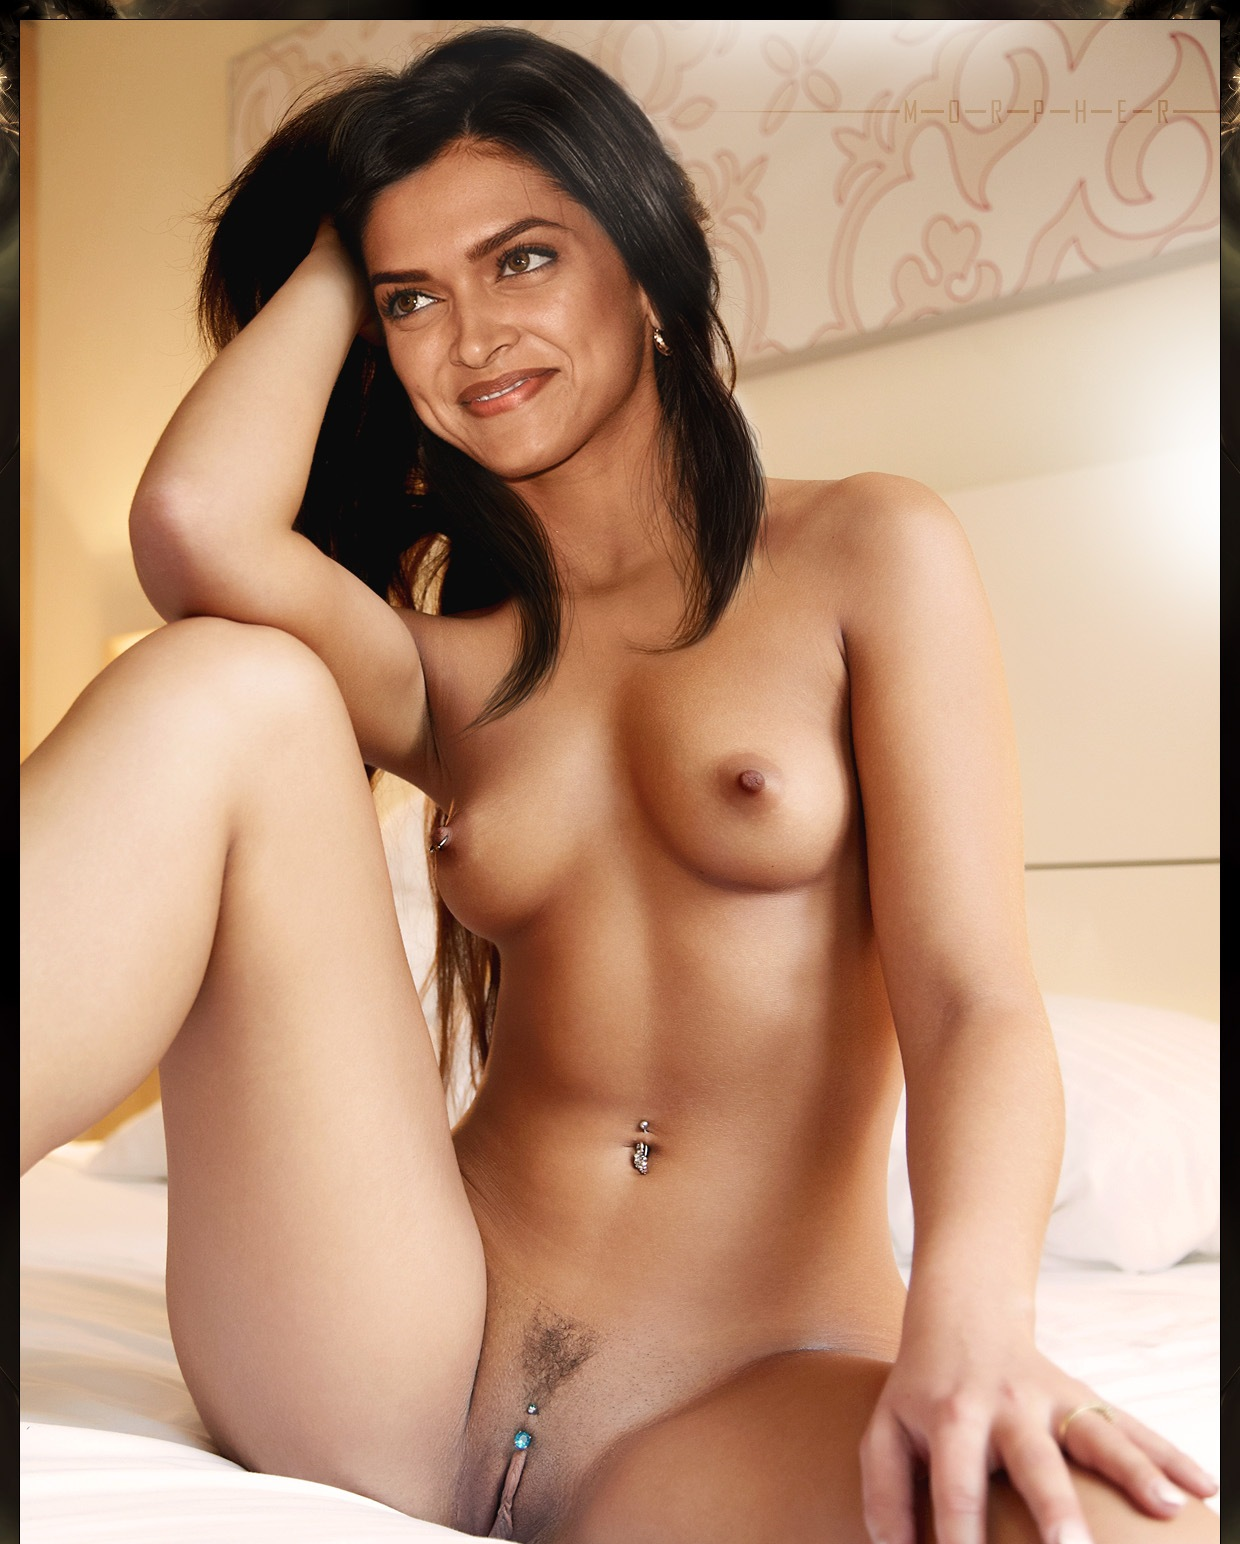 deepika padukone hd nude picks